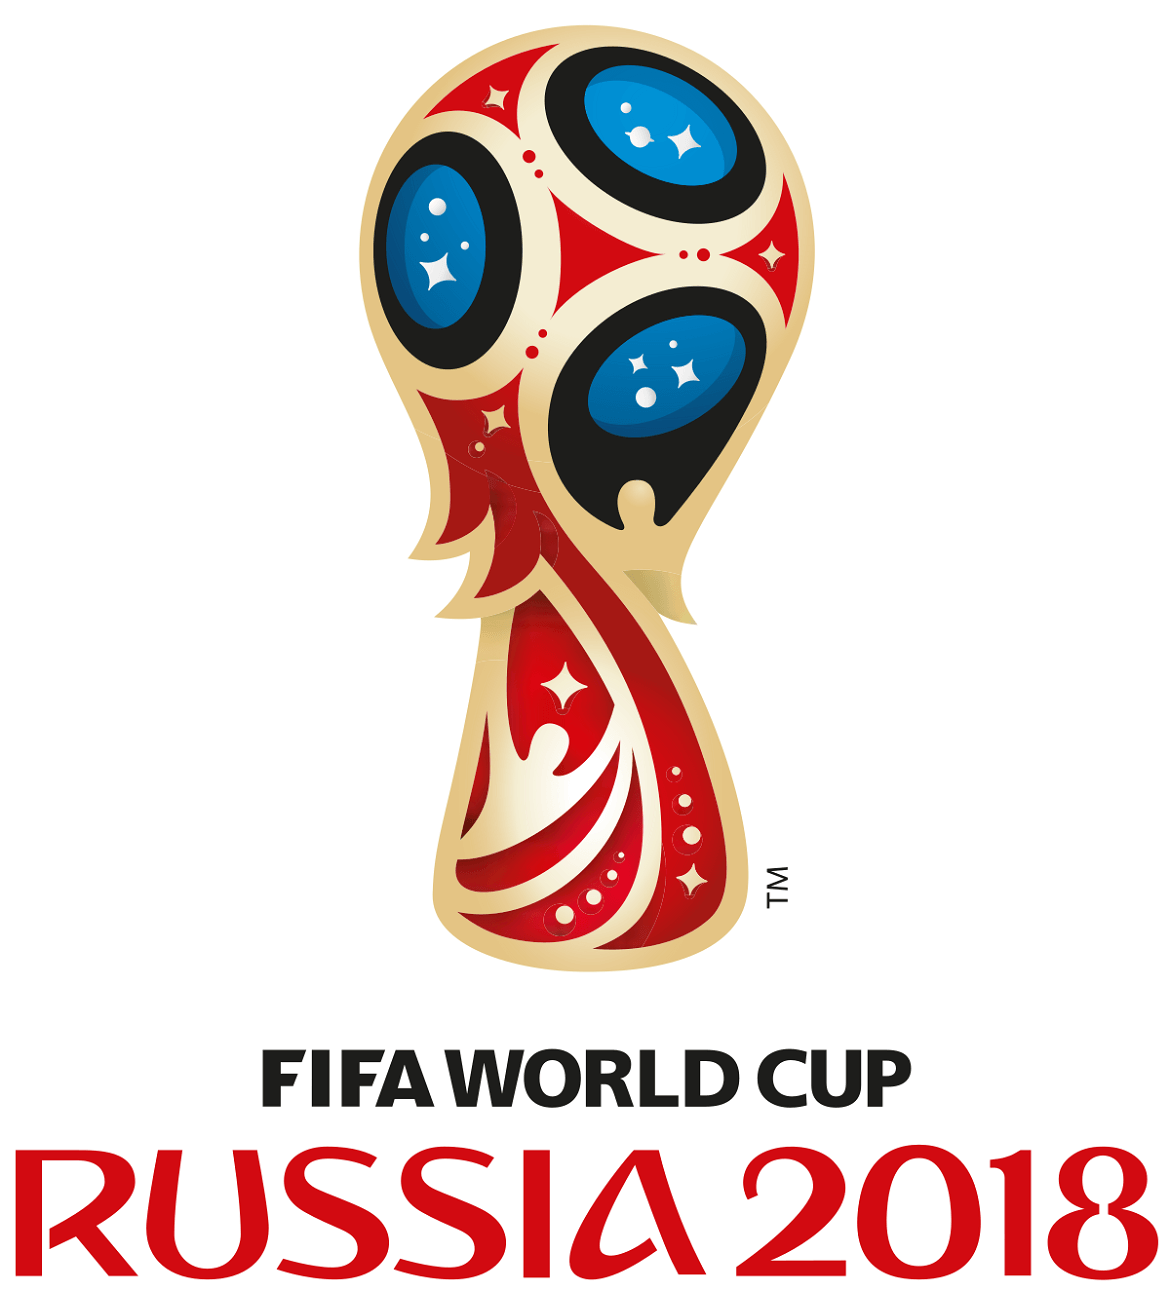 Russia World Cup 2018 World Cup Logo Russia World Cup World Cup